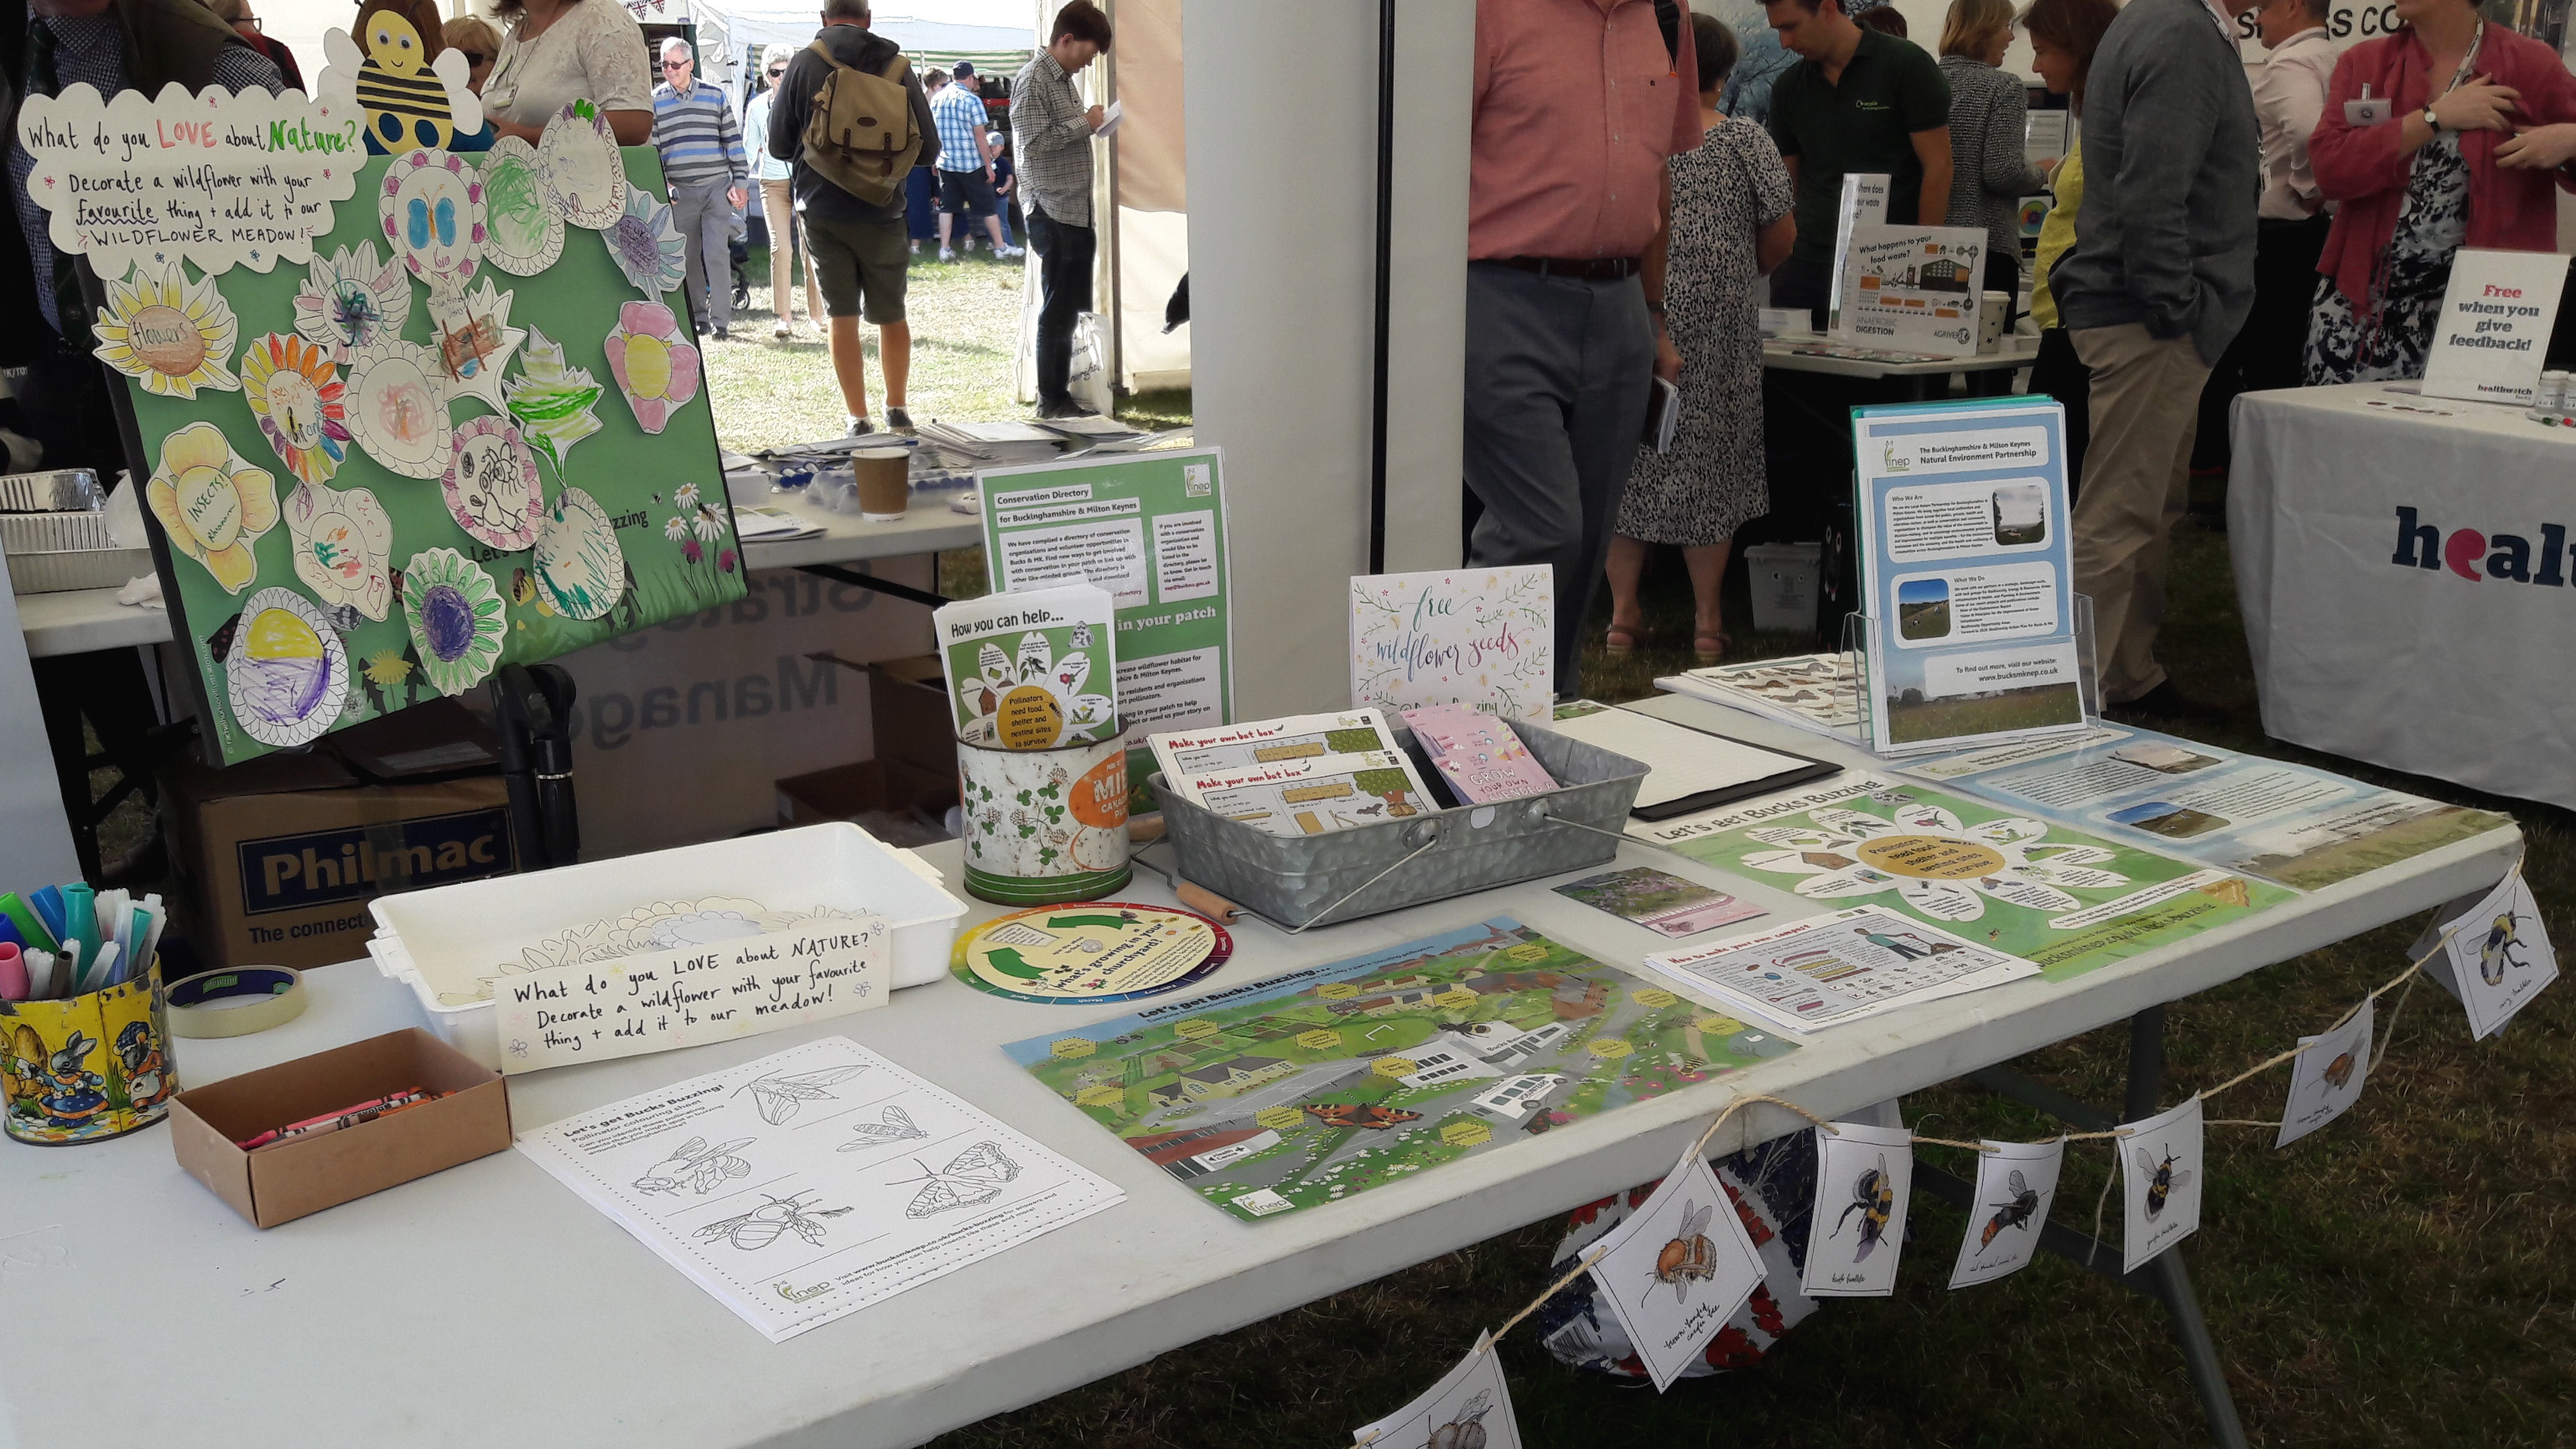 Bucks Buzzing Bucks County Show Stand 2019